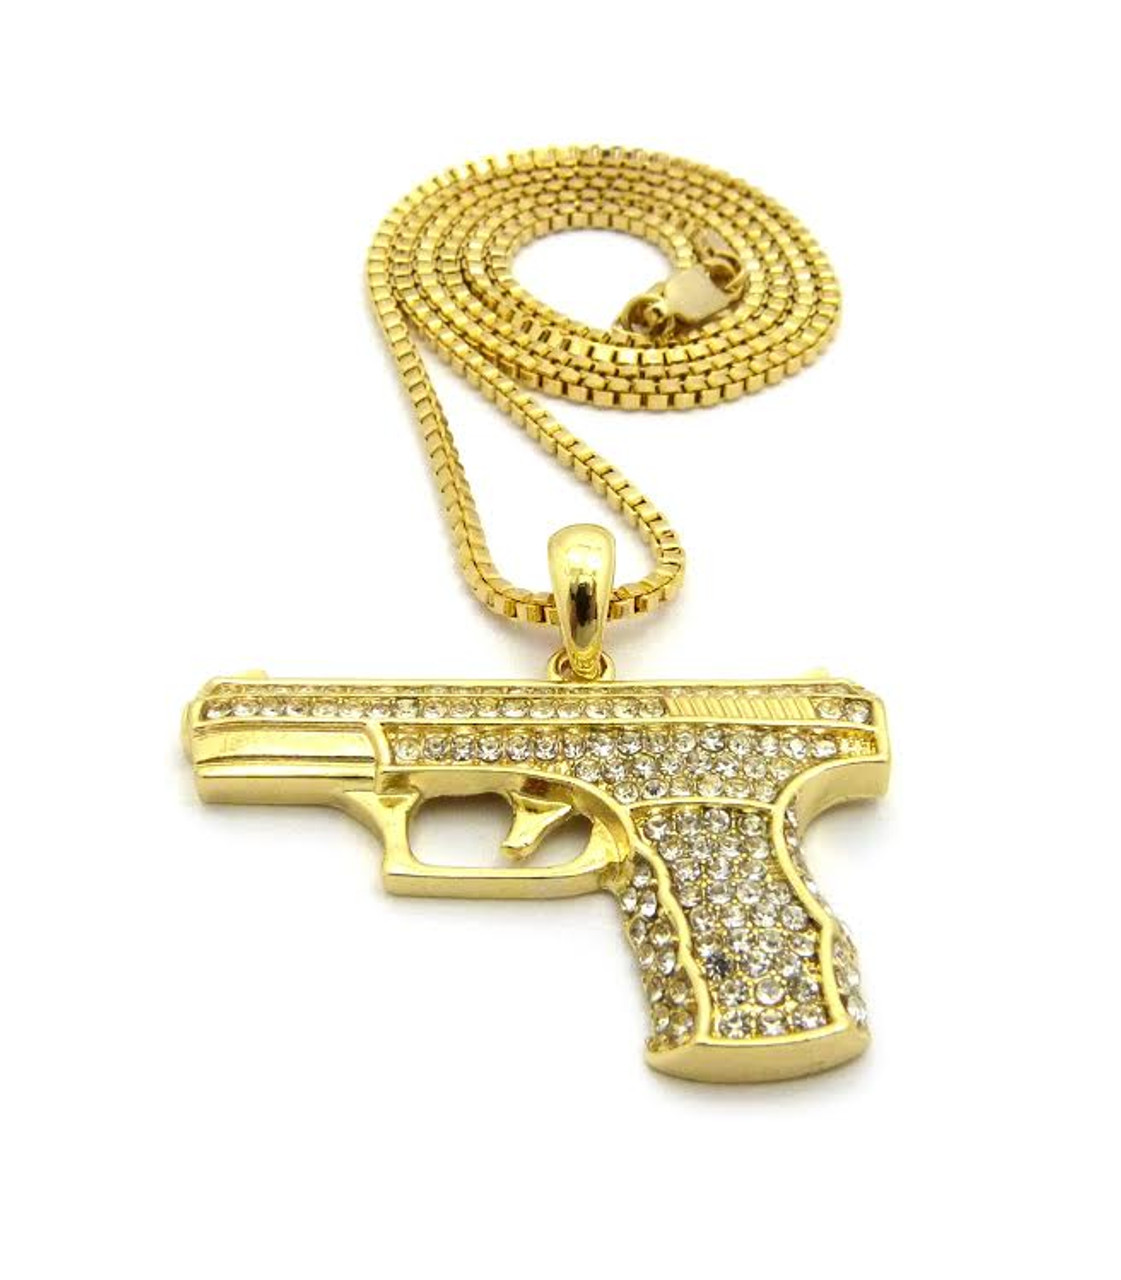 9mm gold gun 14k gold 9mm pistol pendant fully iced out wfree 36 chain aloadofball Gallery